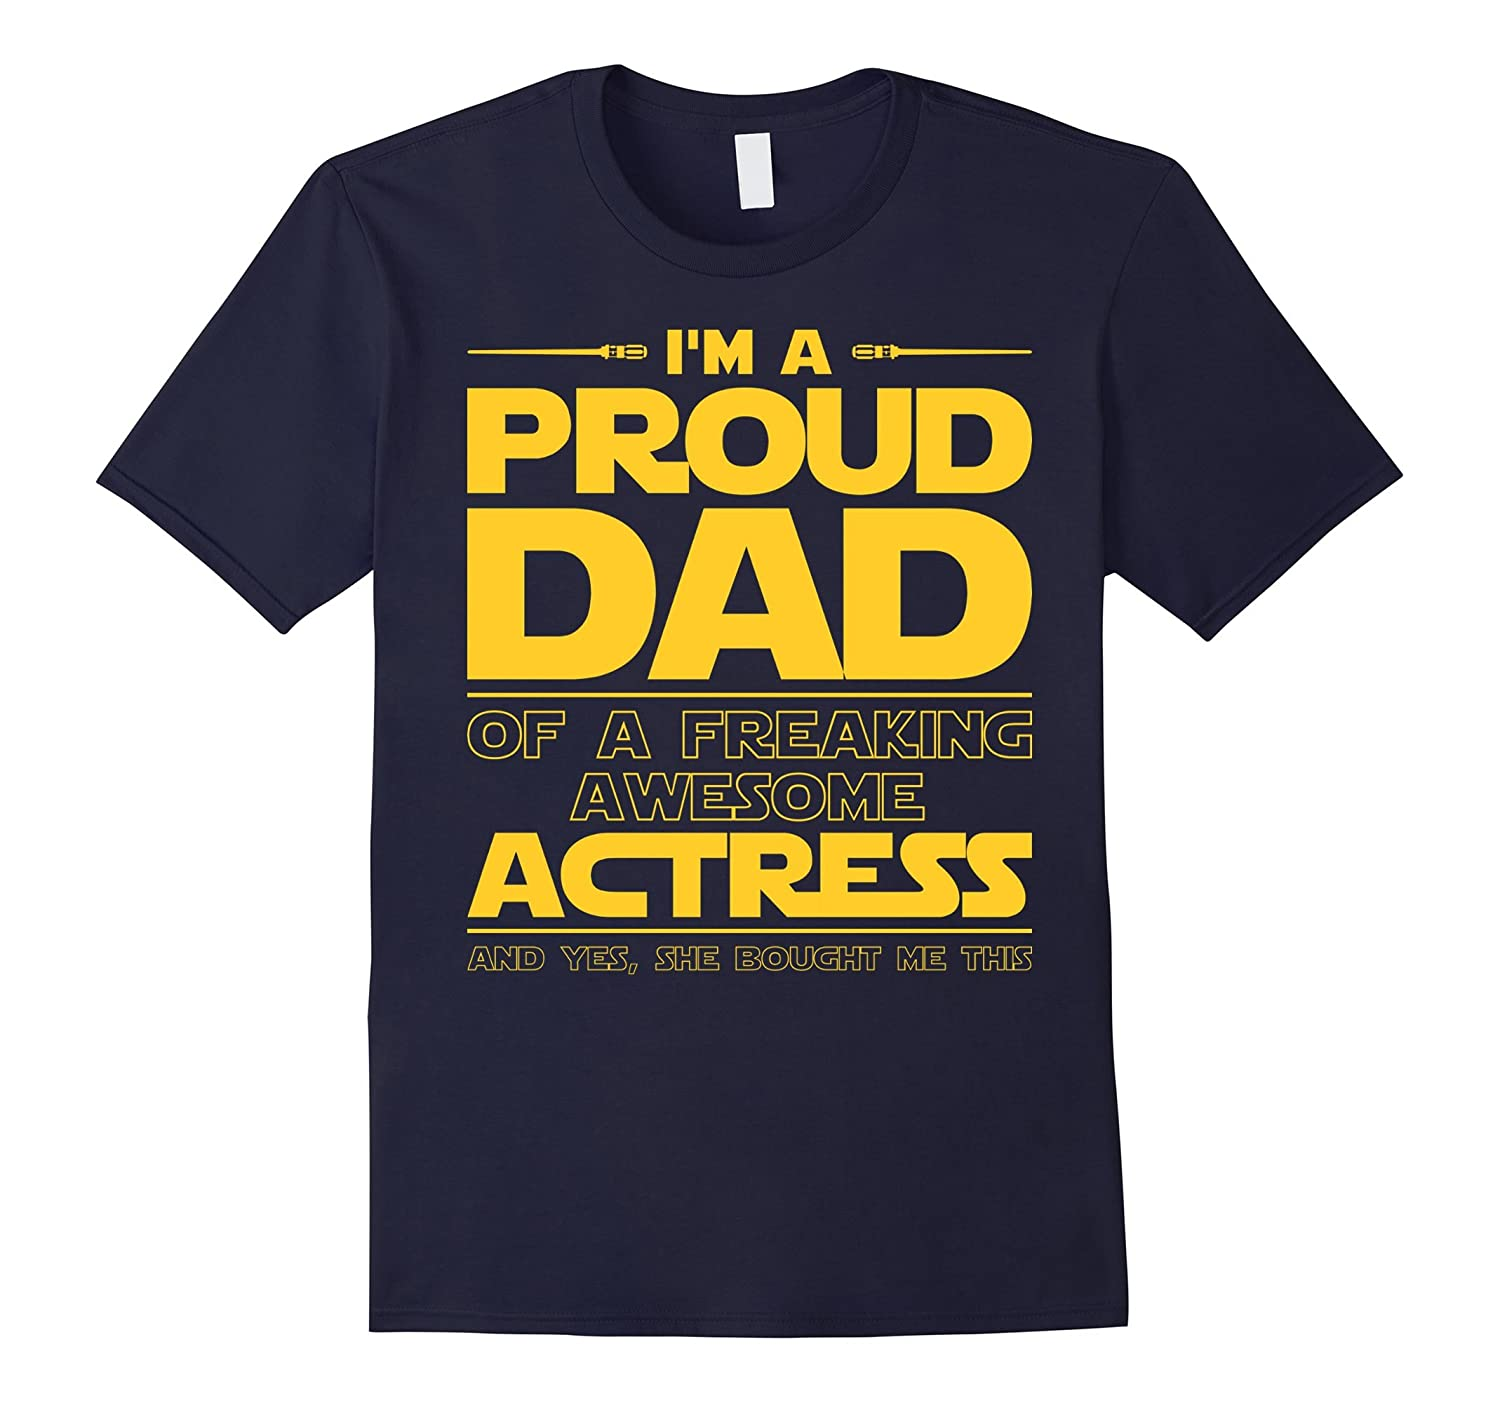 Actress Dad T-shirt Gift For Actress Love-TJ